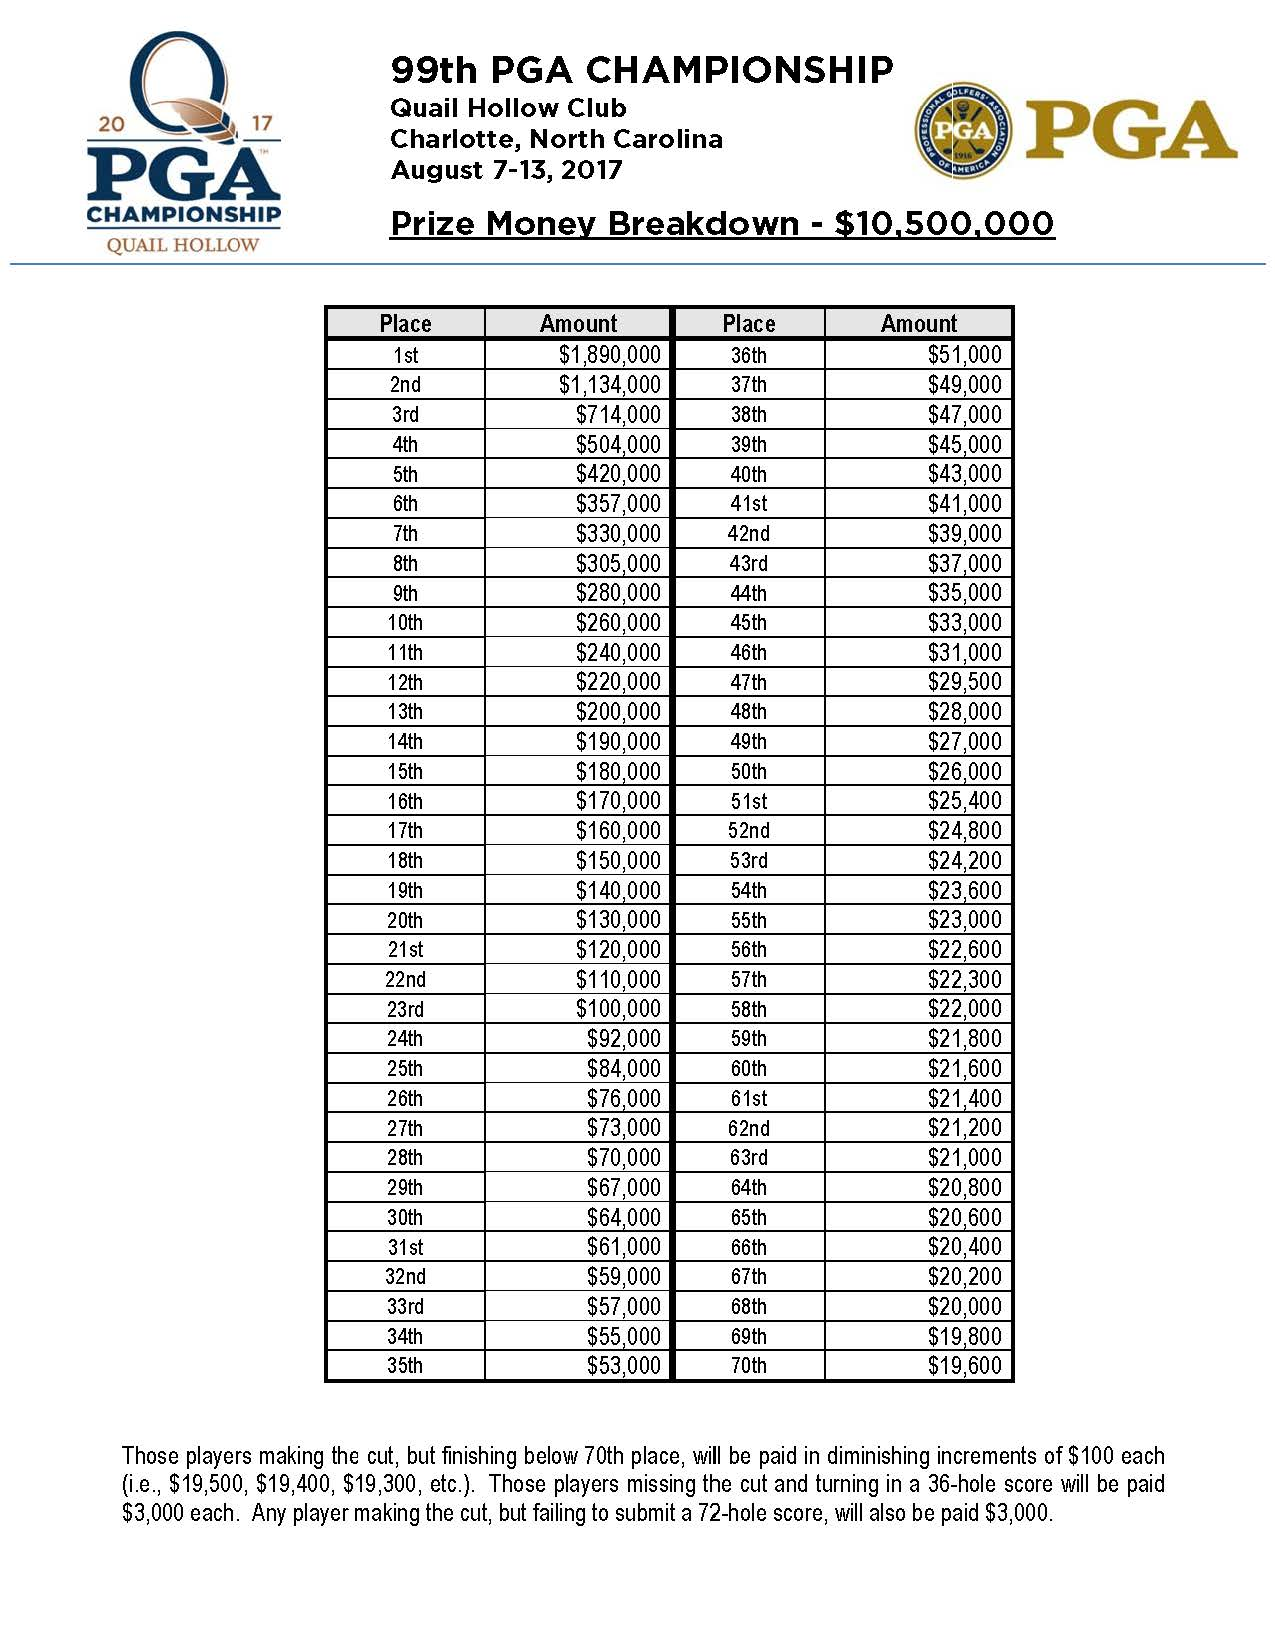 pga tour championship prize money breakdown